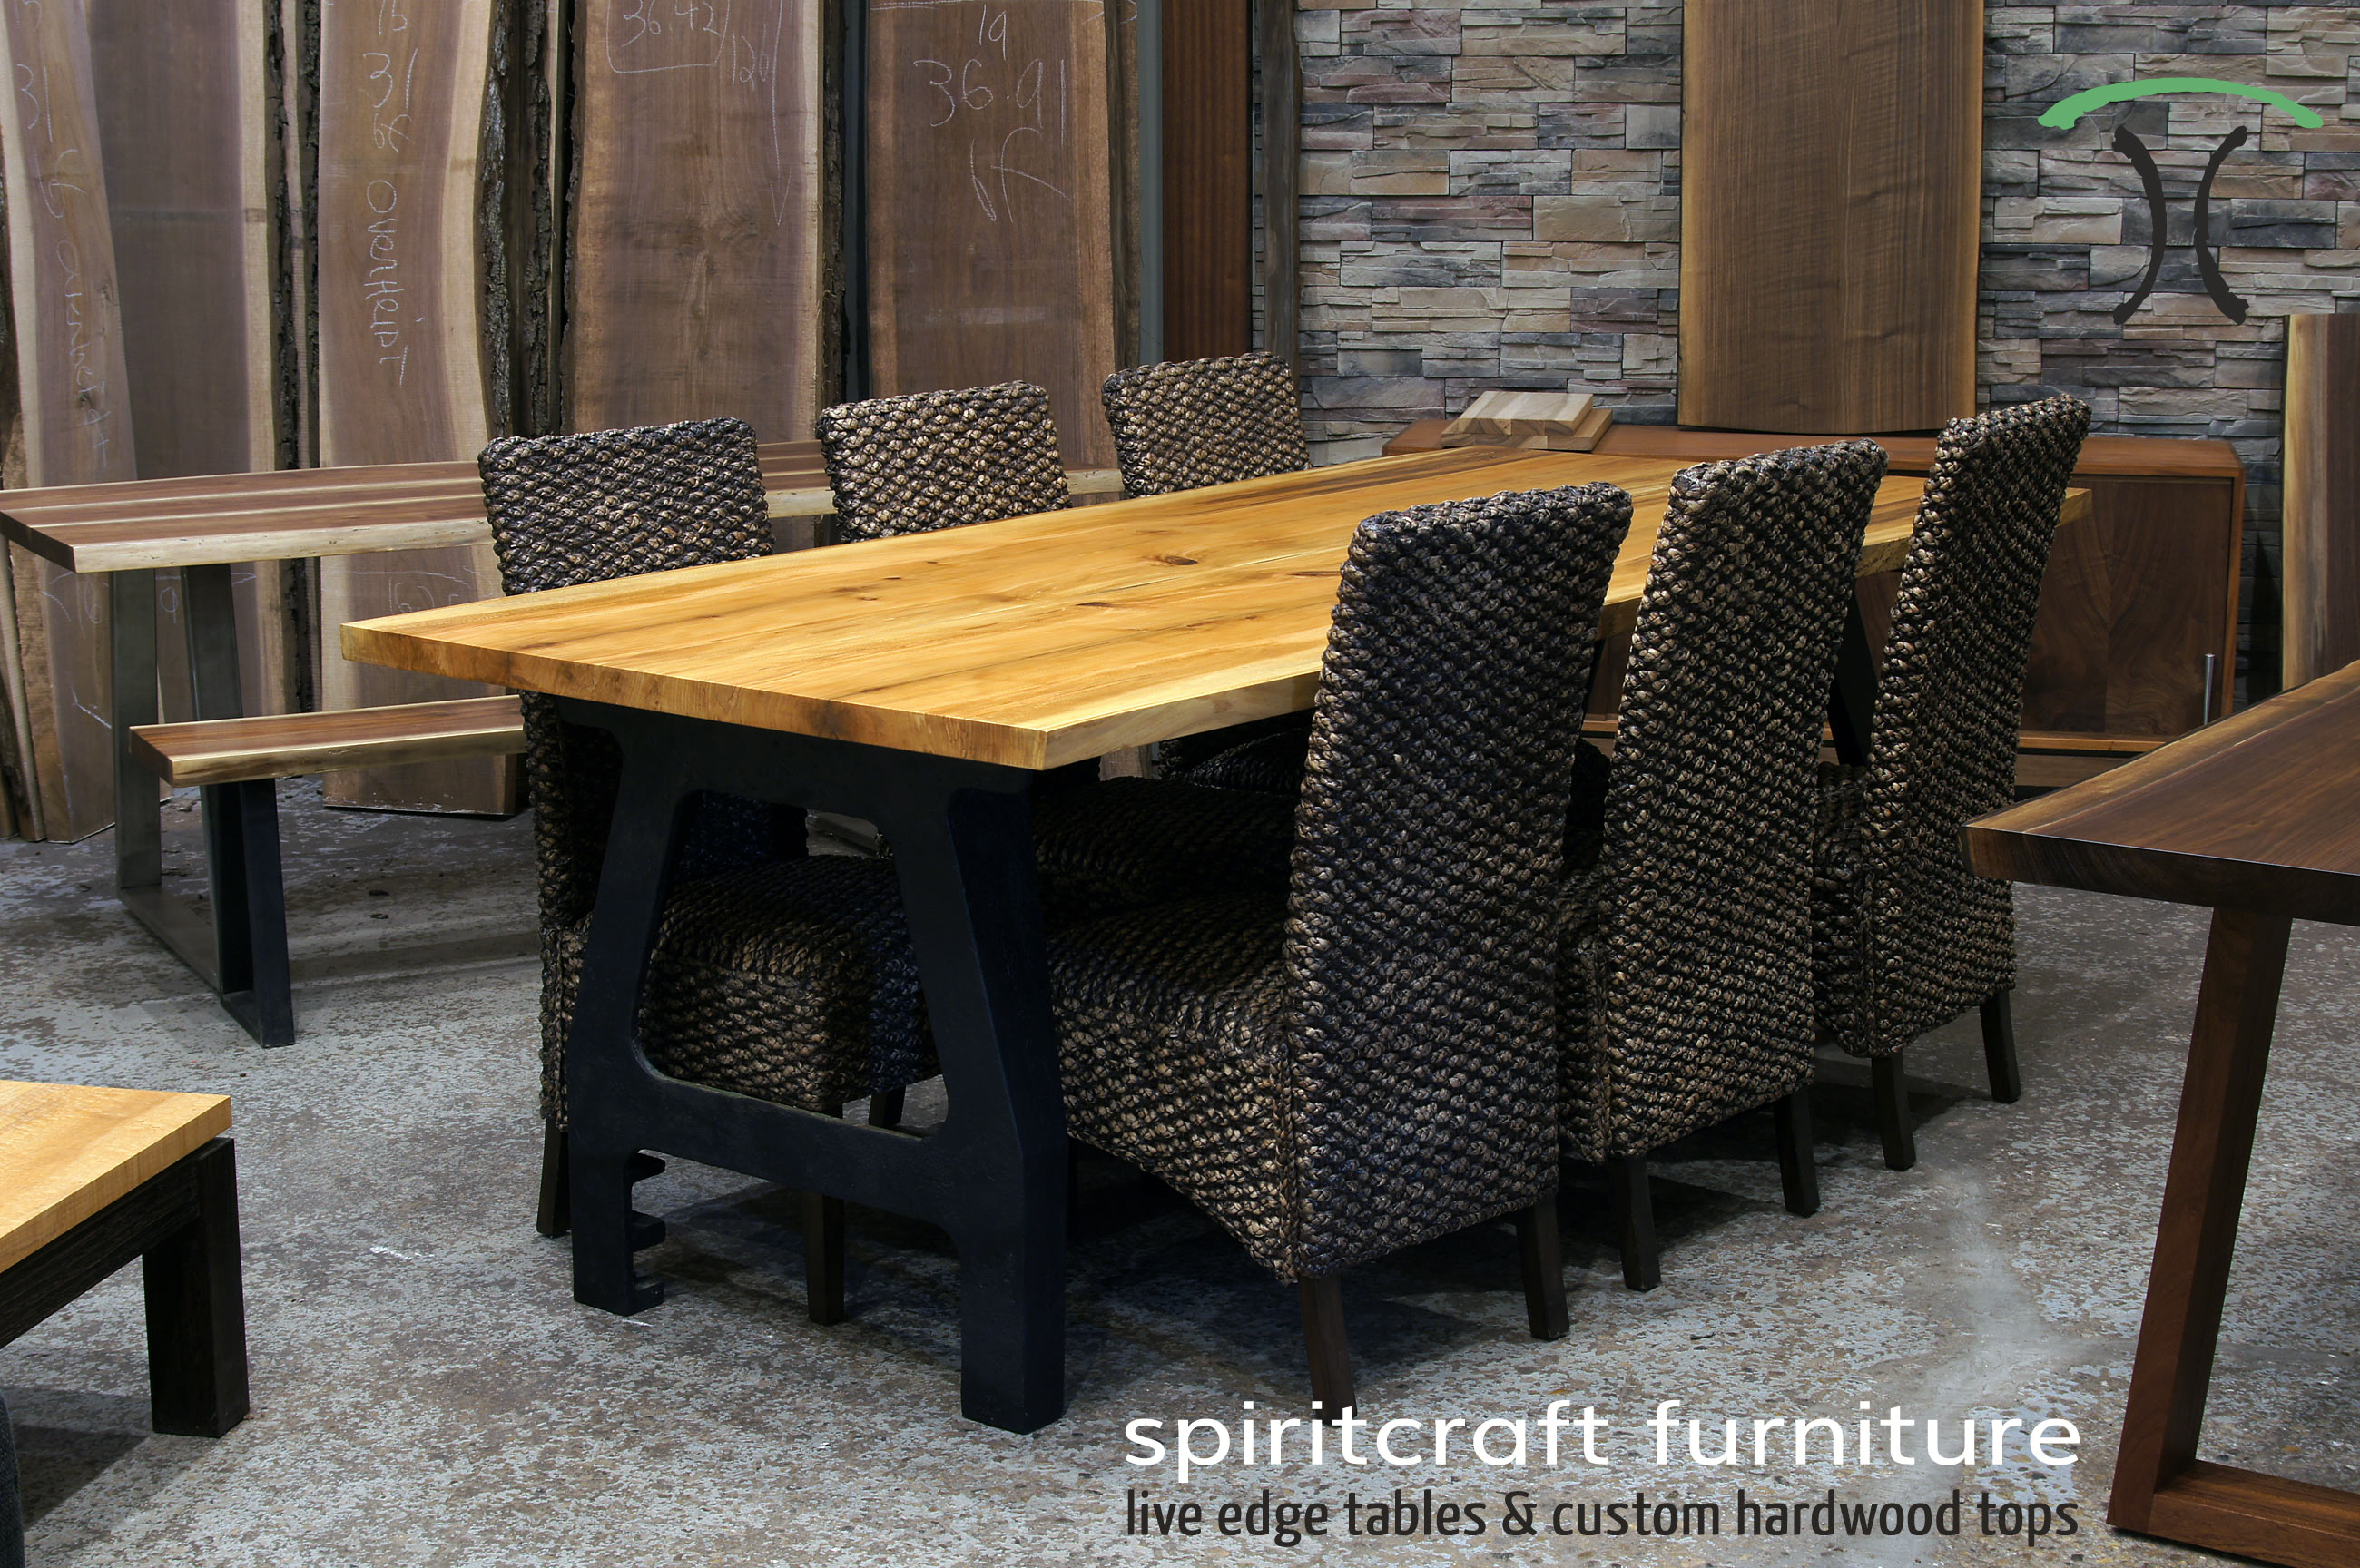 Chicago Area Furniture Natural Edge Dining And Conference Tables In Walnut Sycamore With Kiln Dried Slabs On Hardwood